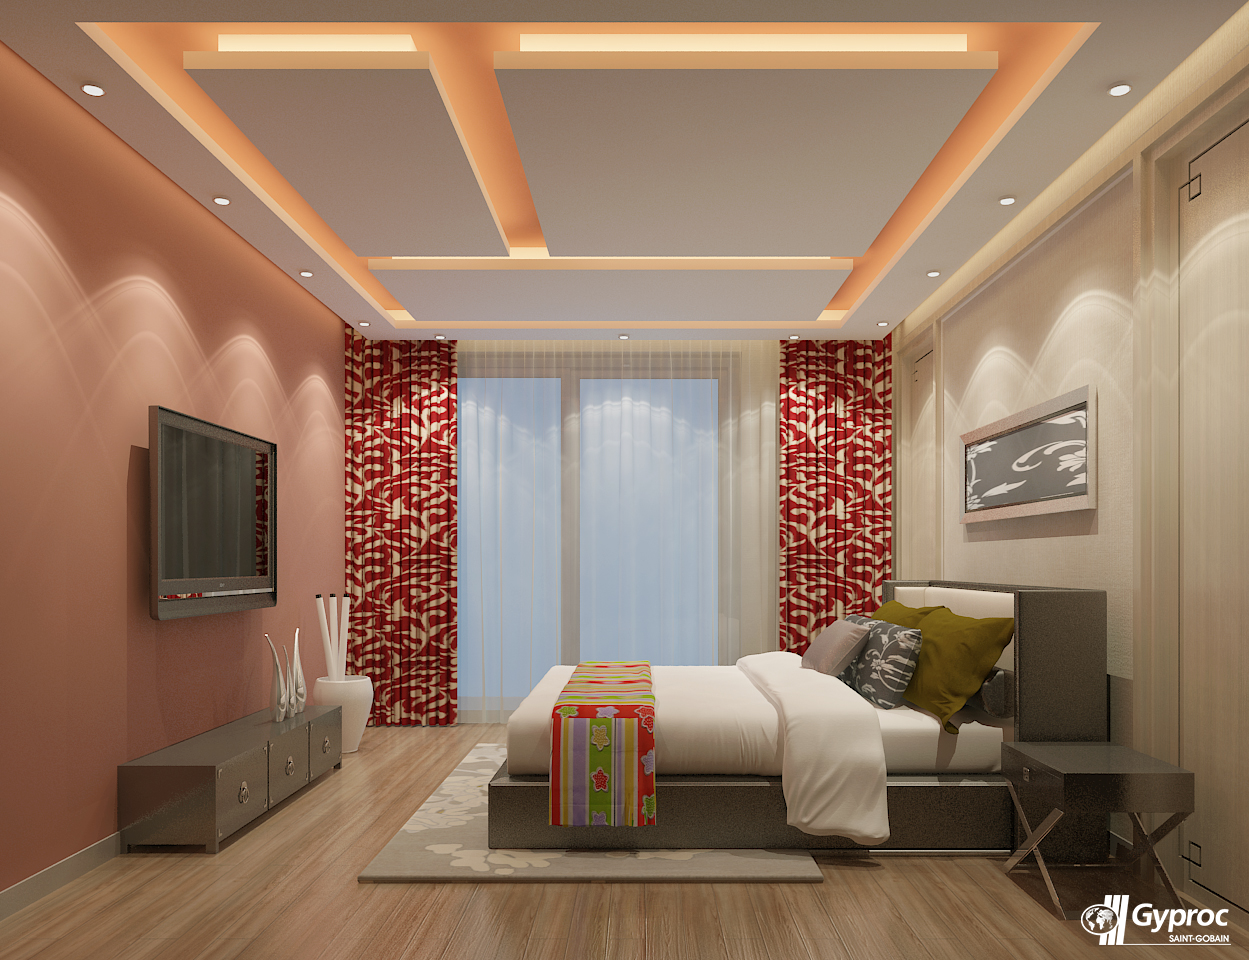 Ceiling Design For Small Room This Gracious And Artistic Falseceiling Will Definitely